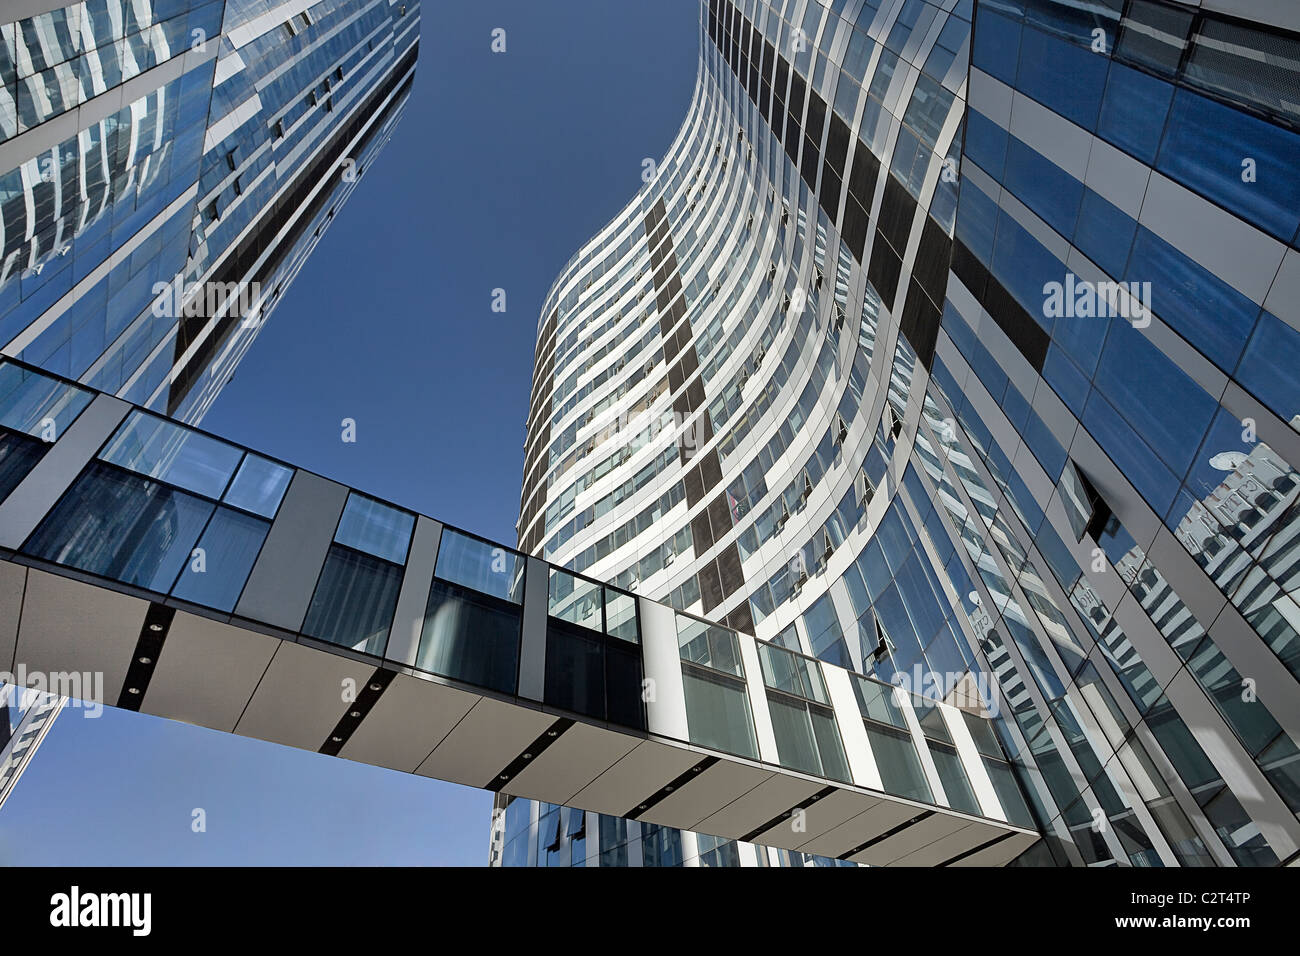 Modern architecture, skyscrapers with glass surface connected via a walkway, Beijing Central Business District, - Stock Image